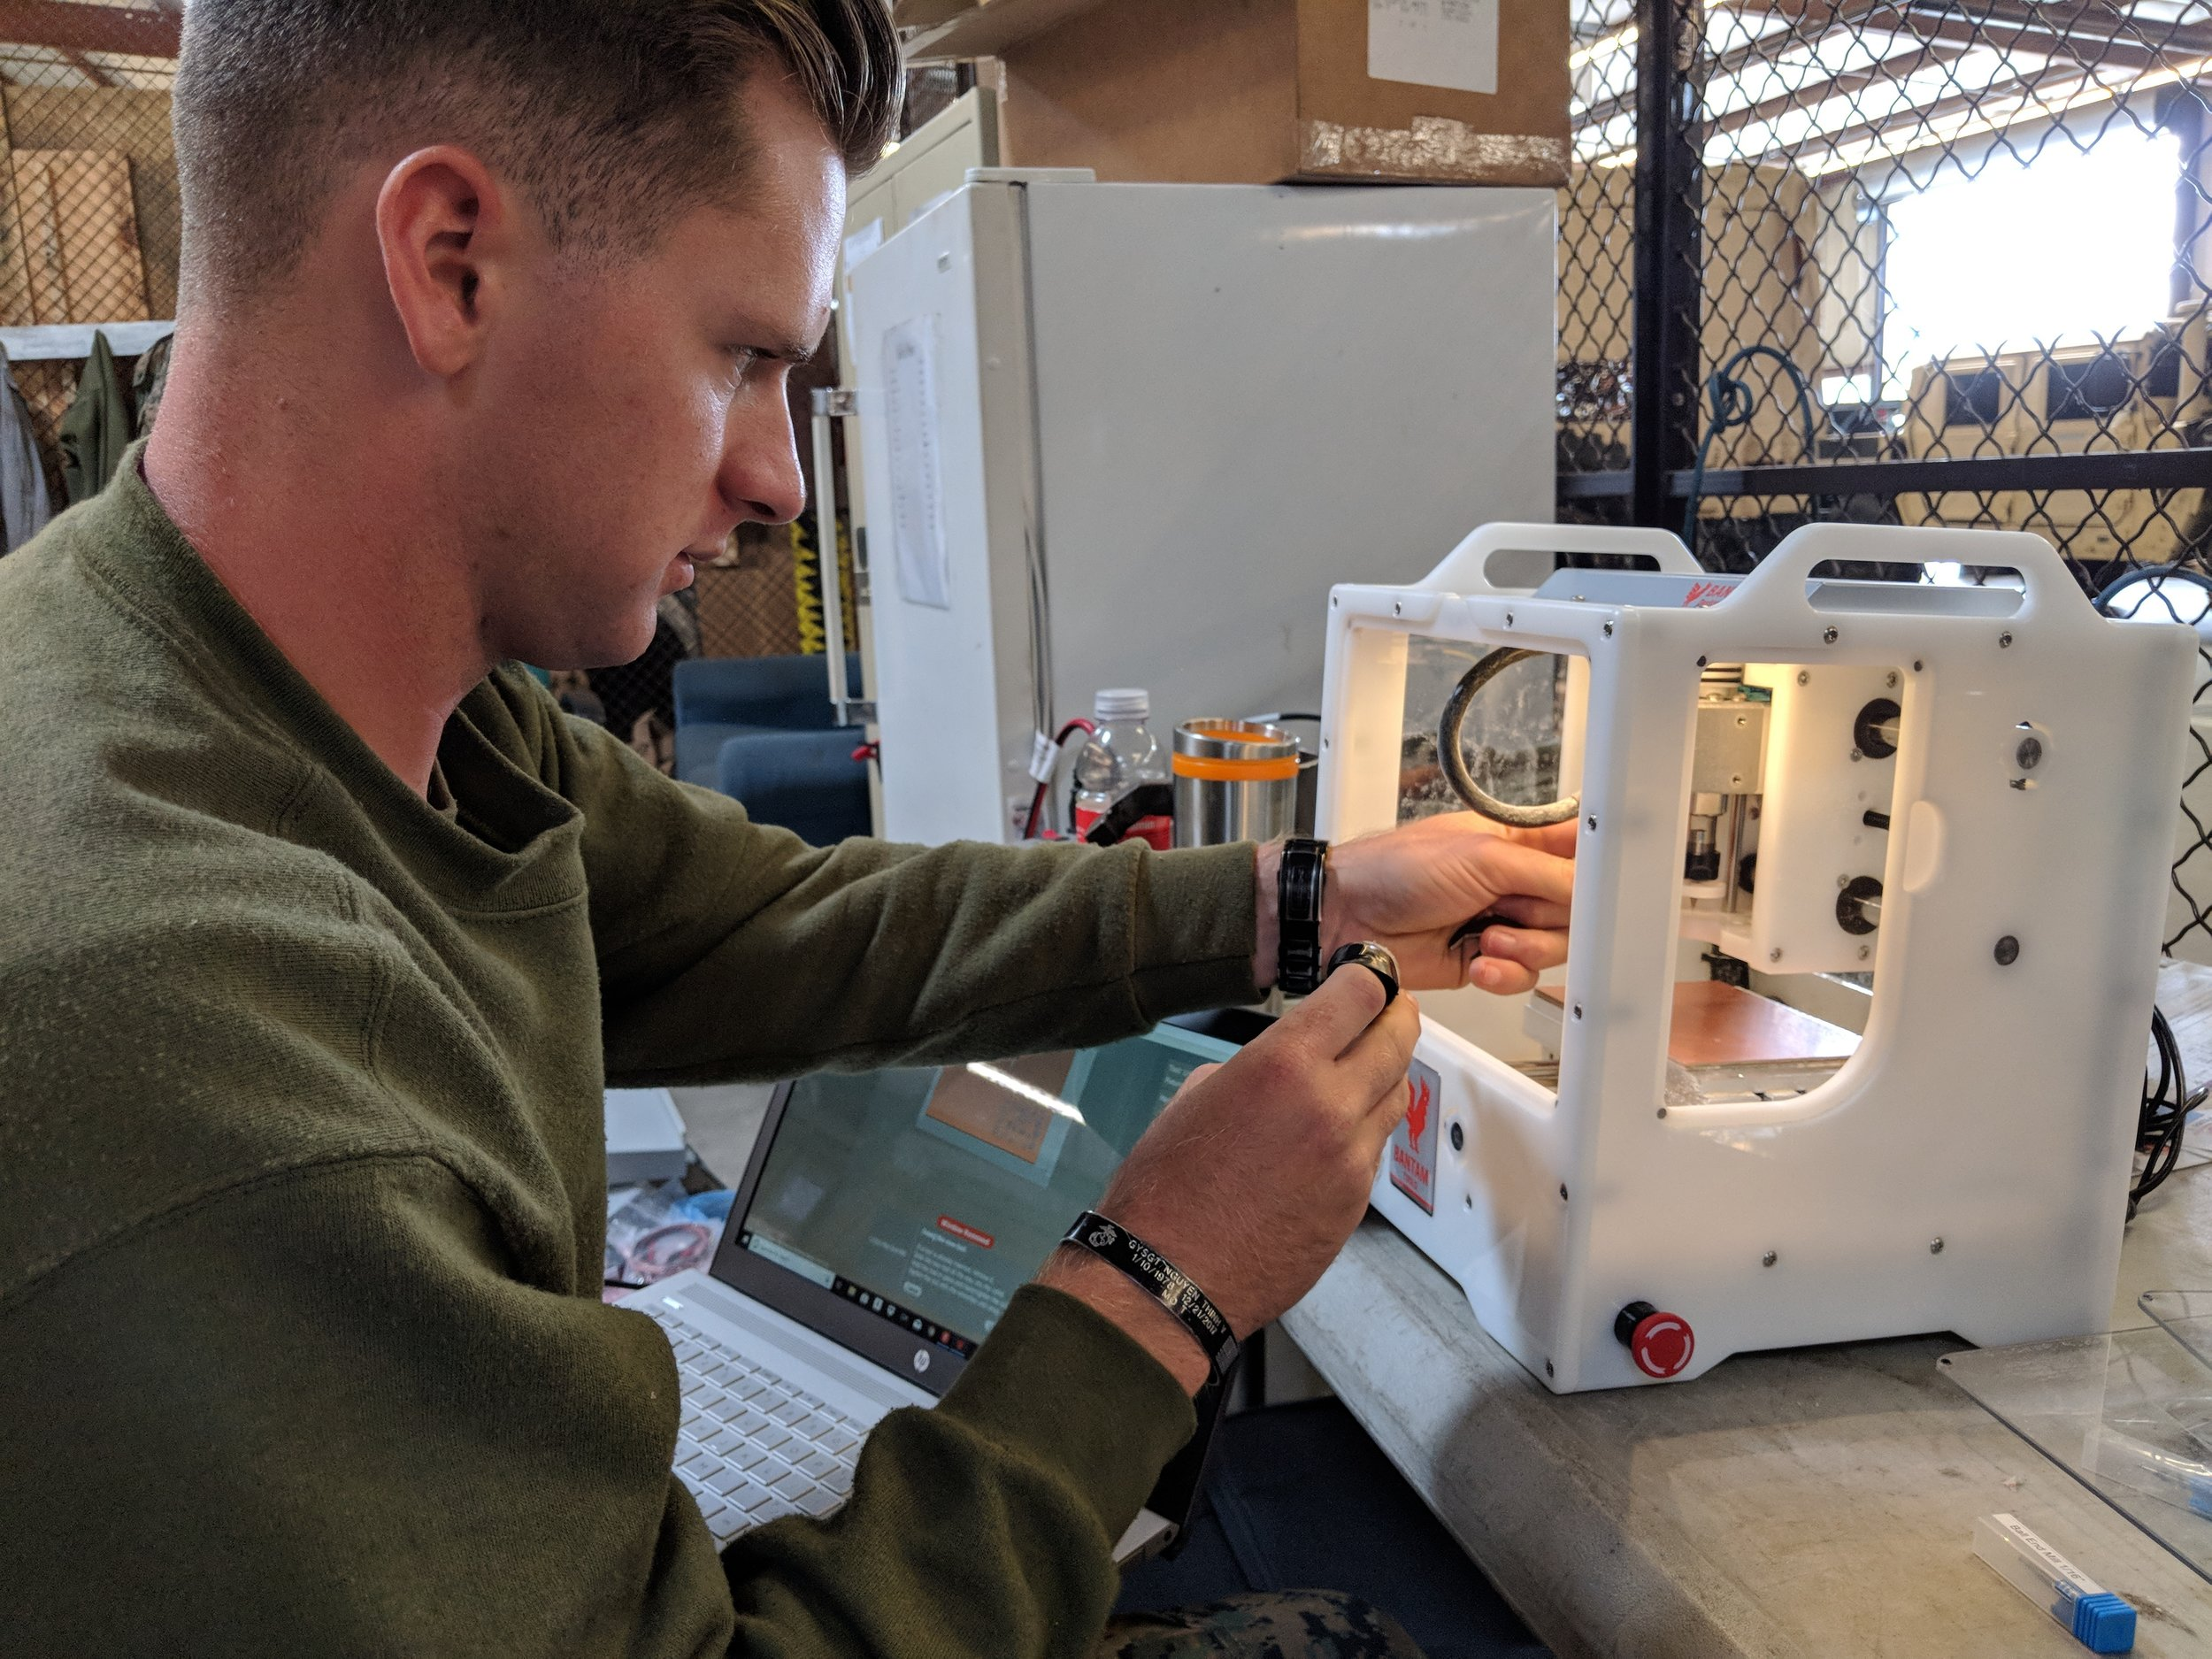 Marine using the Bantam Tools Desktop PCB Milling Machine.